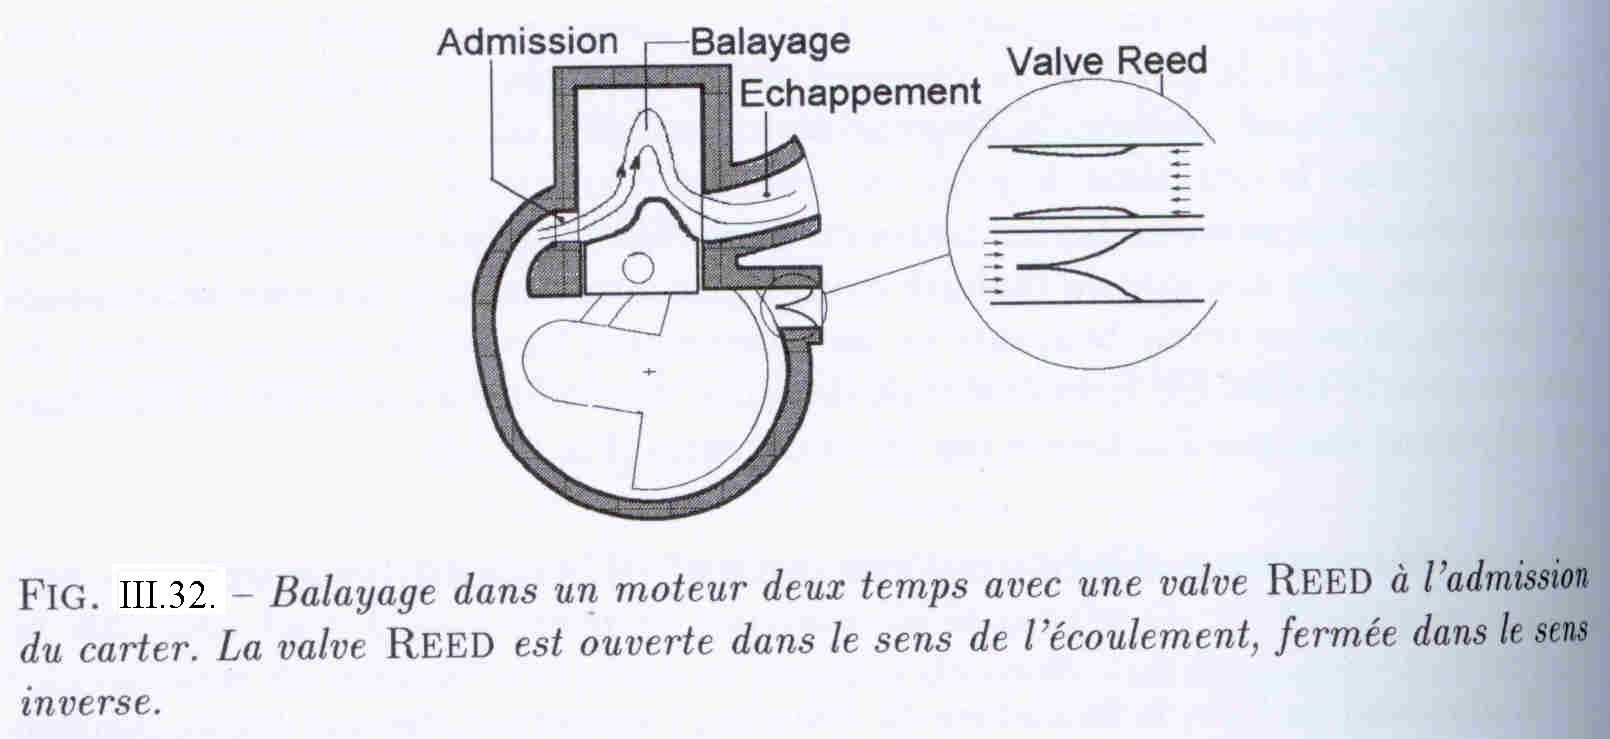 Valve Reed for 2 times cycle engines